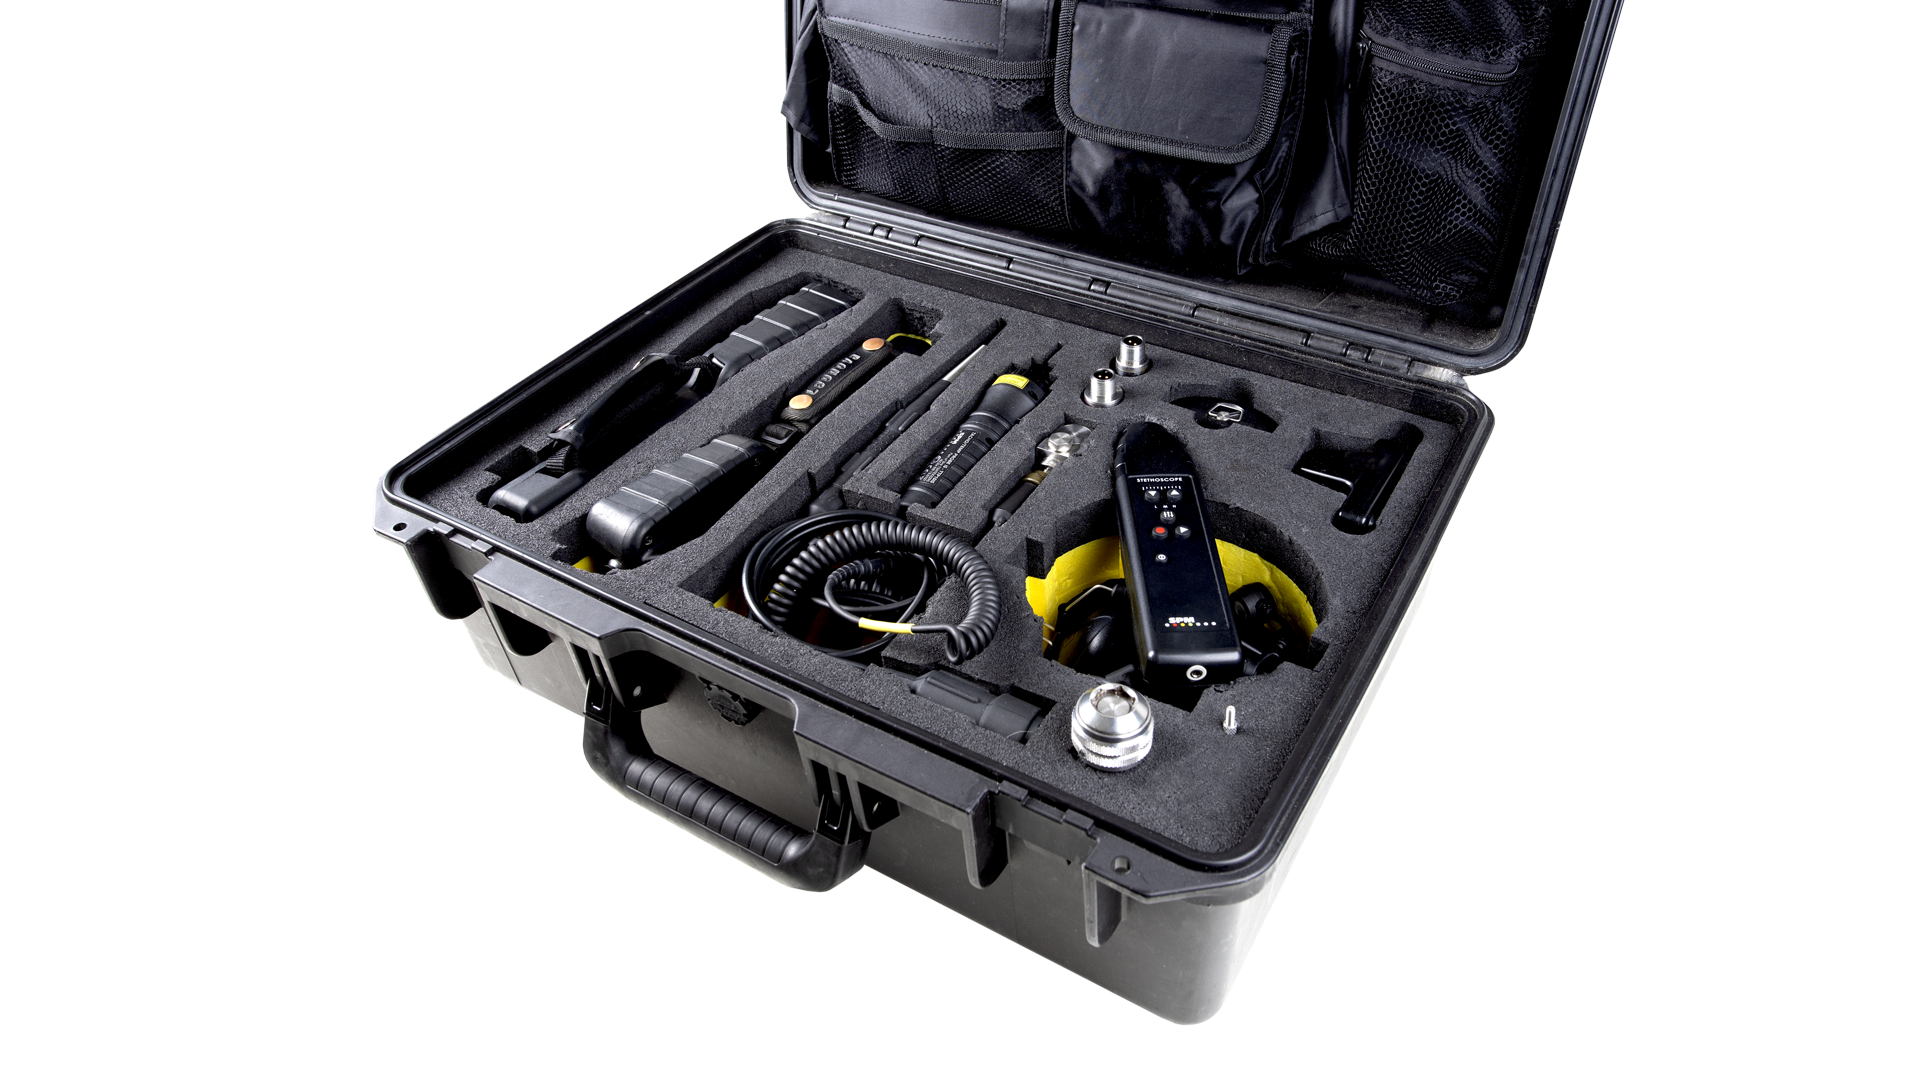 Carrying case CAS25, including portable instruments and accessories